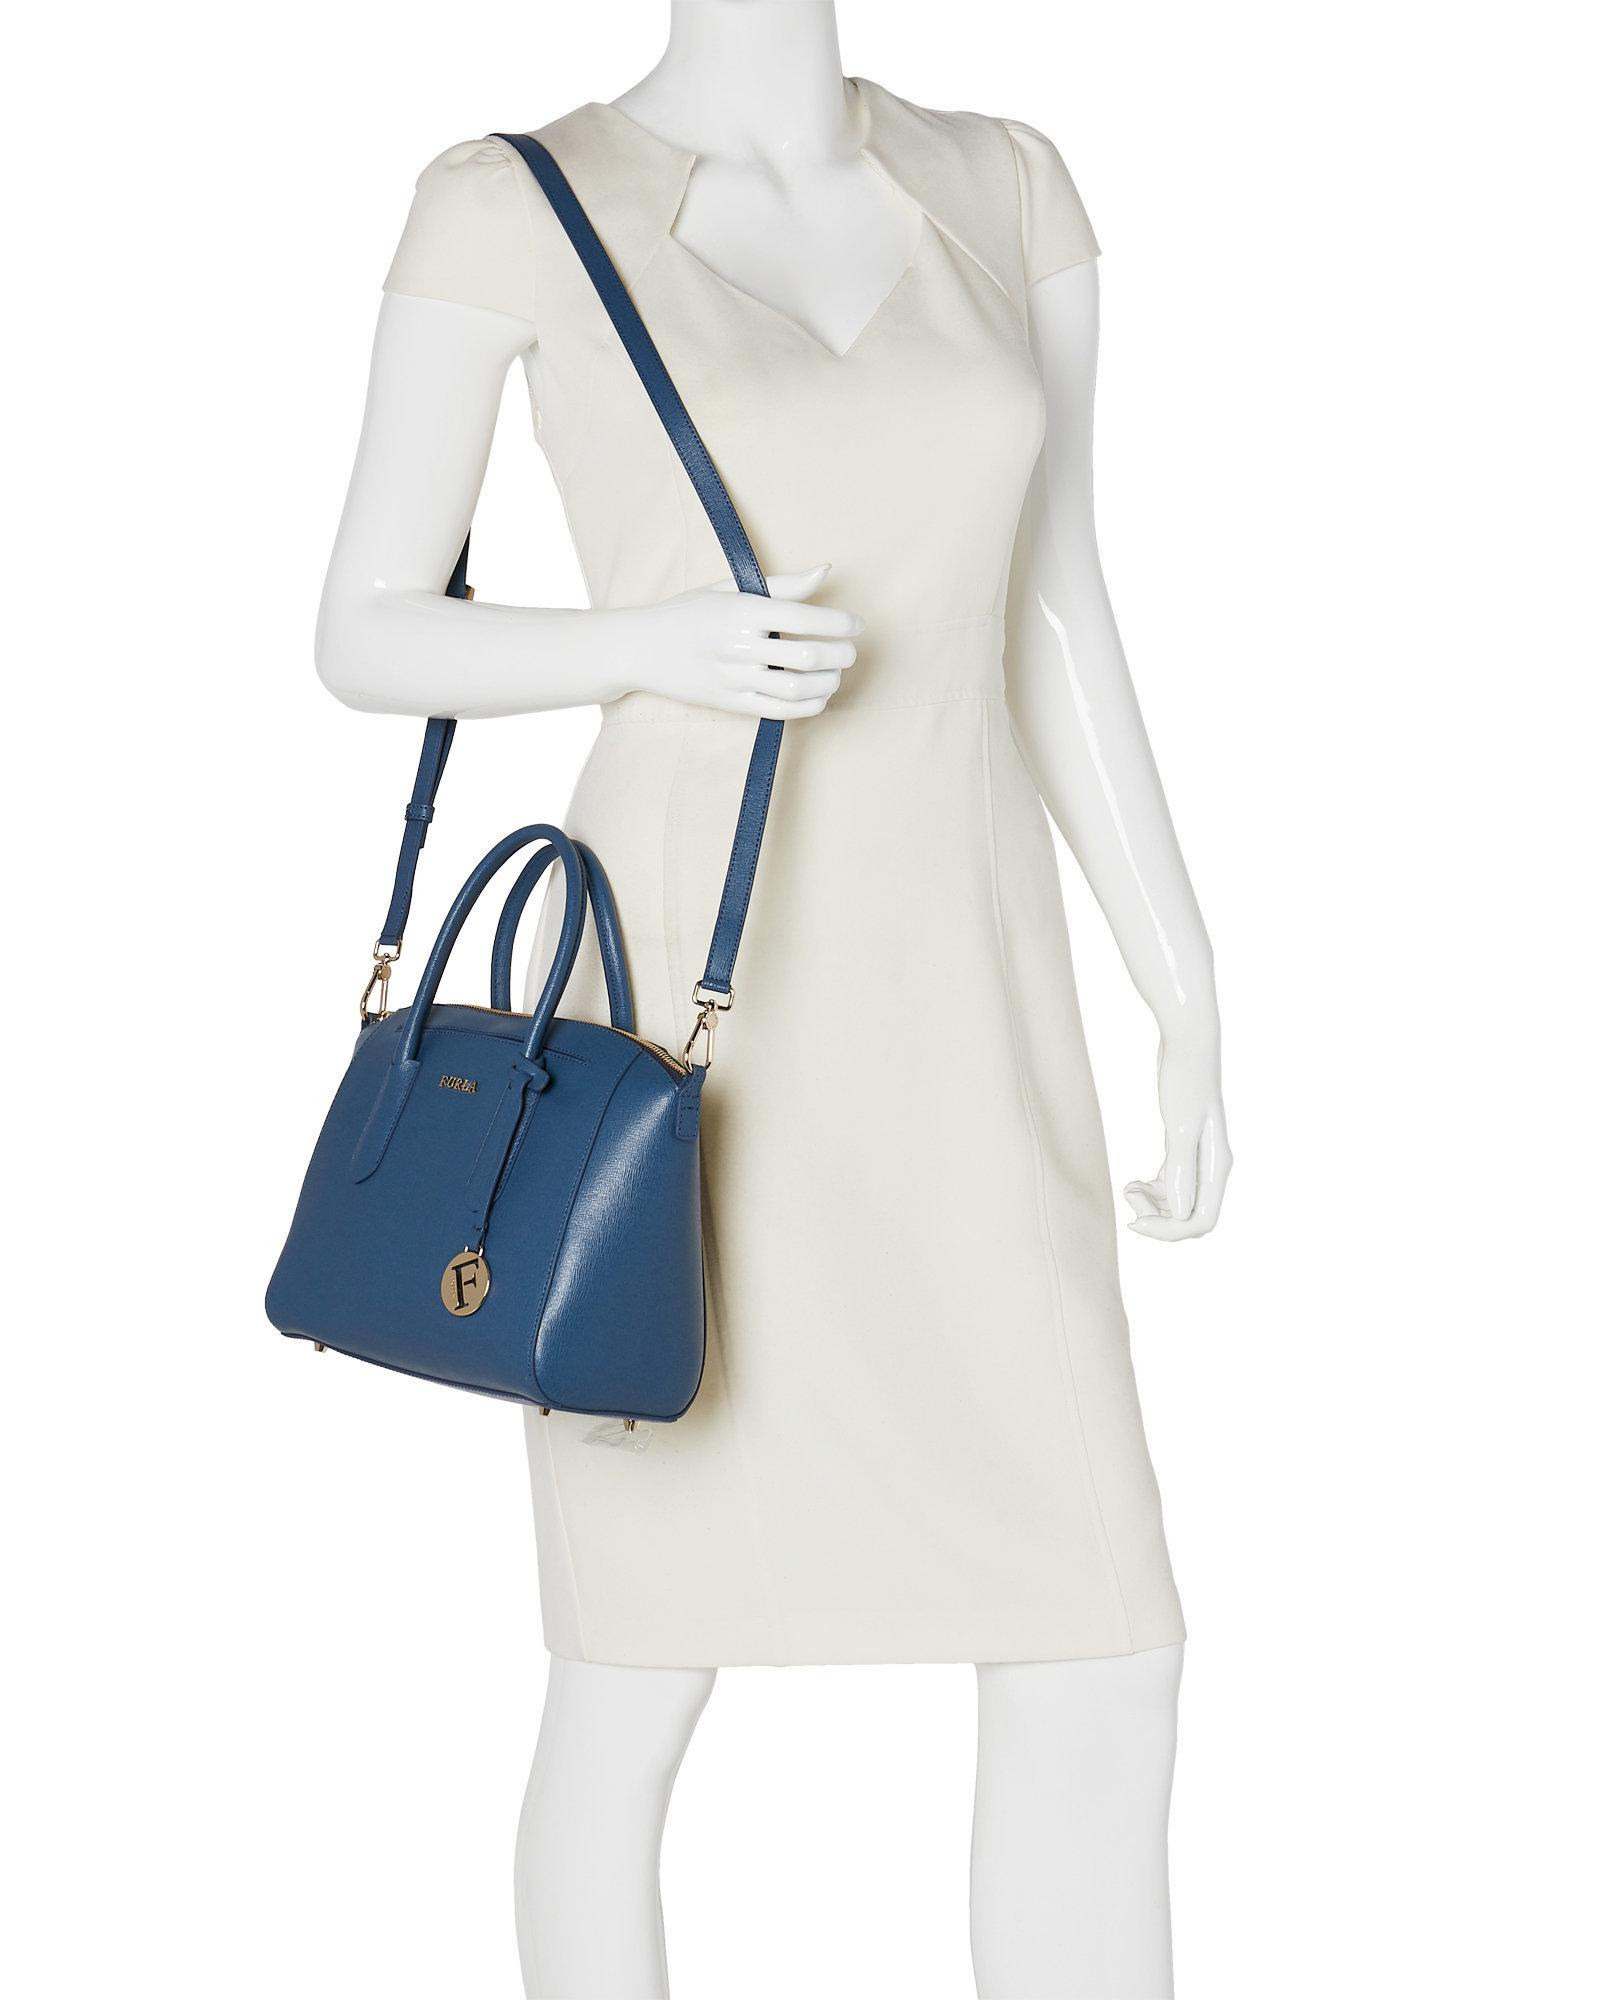 Lyst Furla Tessa Small Leather Satchel In Blue Fossil Gallery